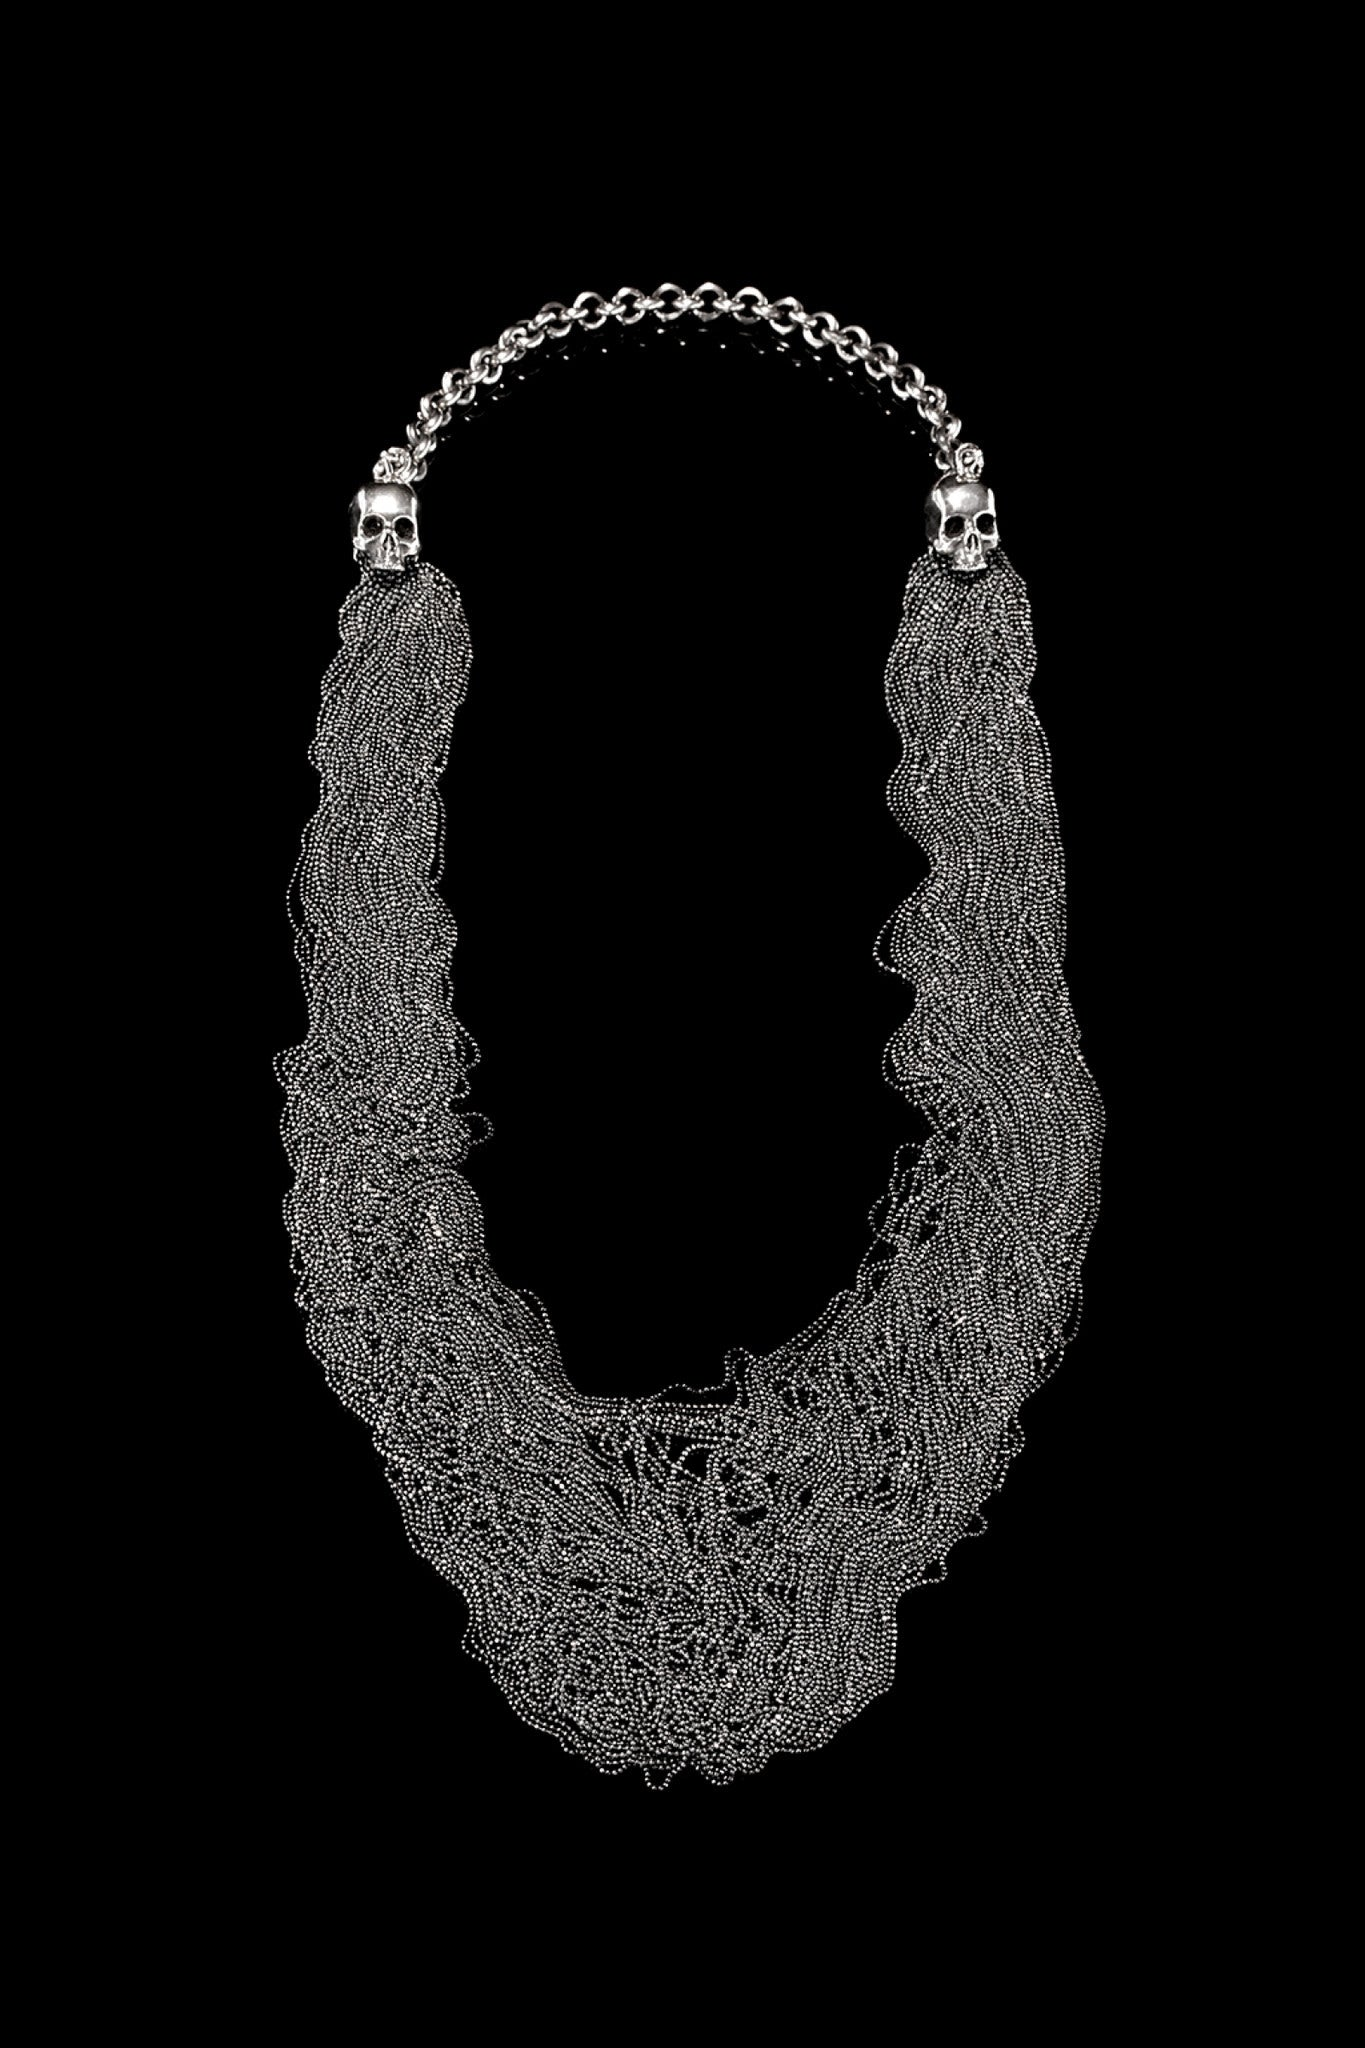 Ugo Cacciatori, Silver, Jewelry, Sterling Silver, Necklace, Silver, Black Diamonds, Brown Diamonds, Emeralds, Rubies, Sapphires